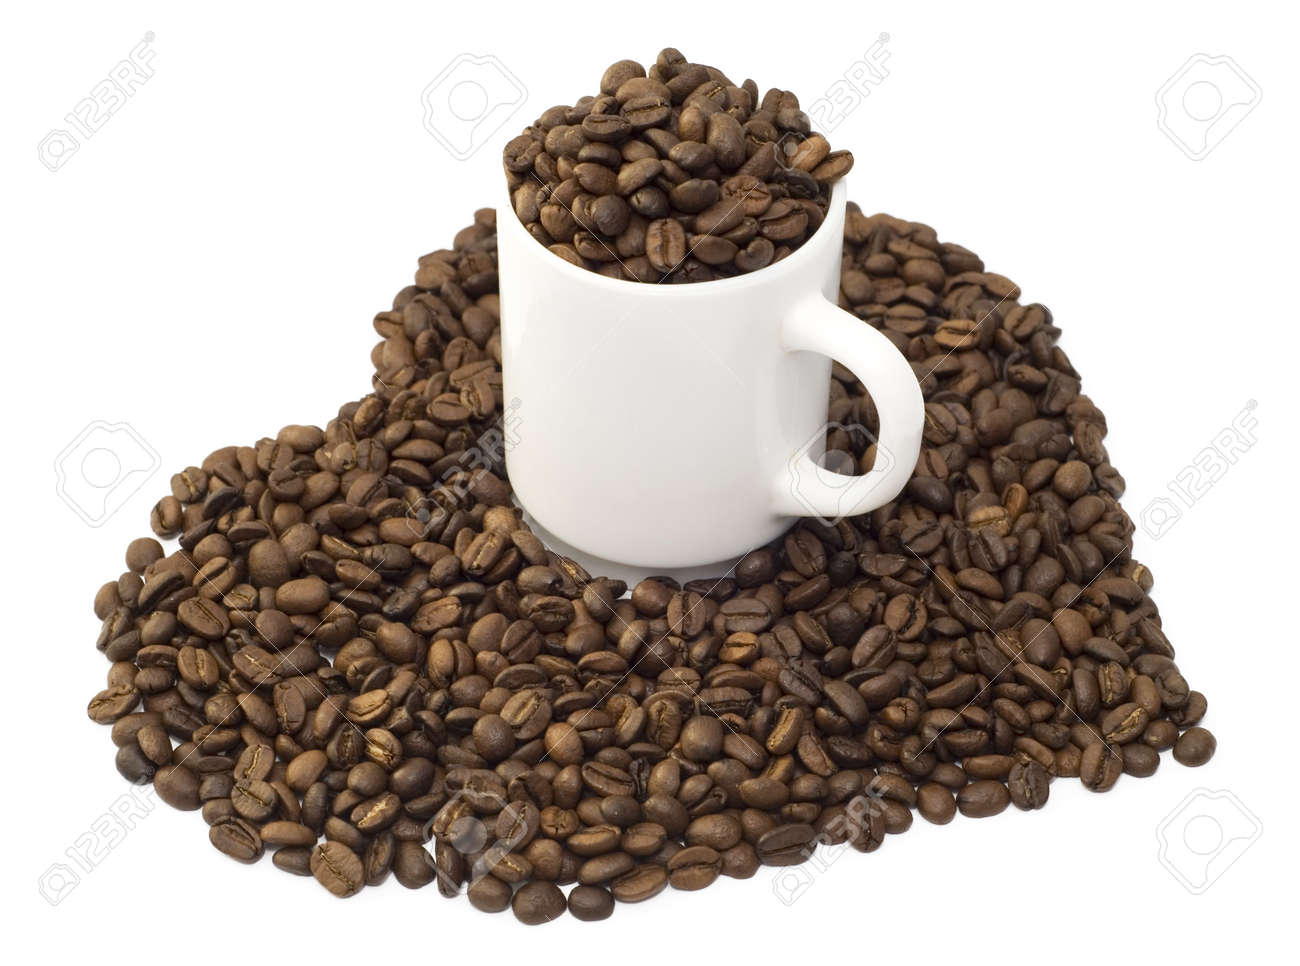 coffee beans and cup isolated over white background Stock Photo - 2546319